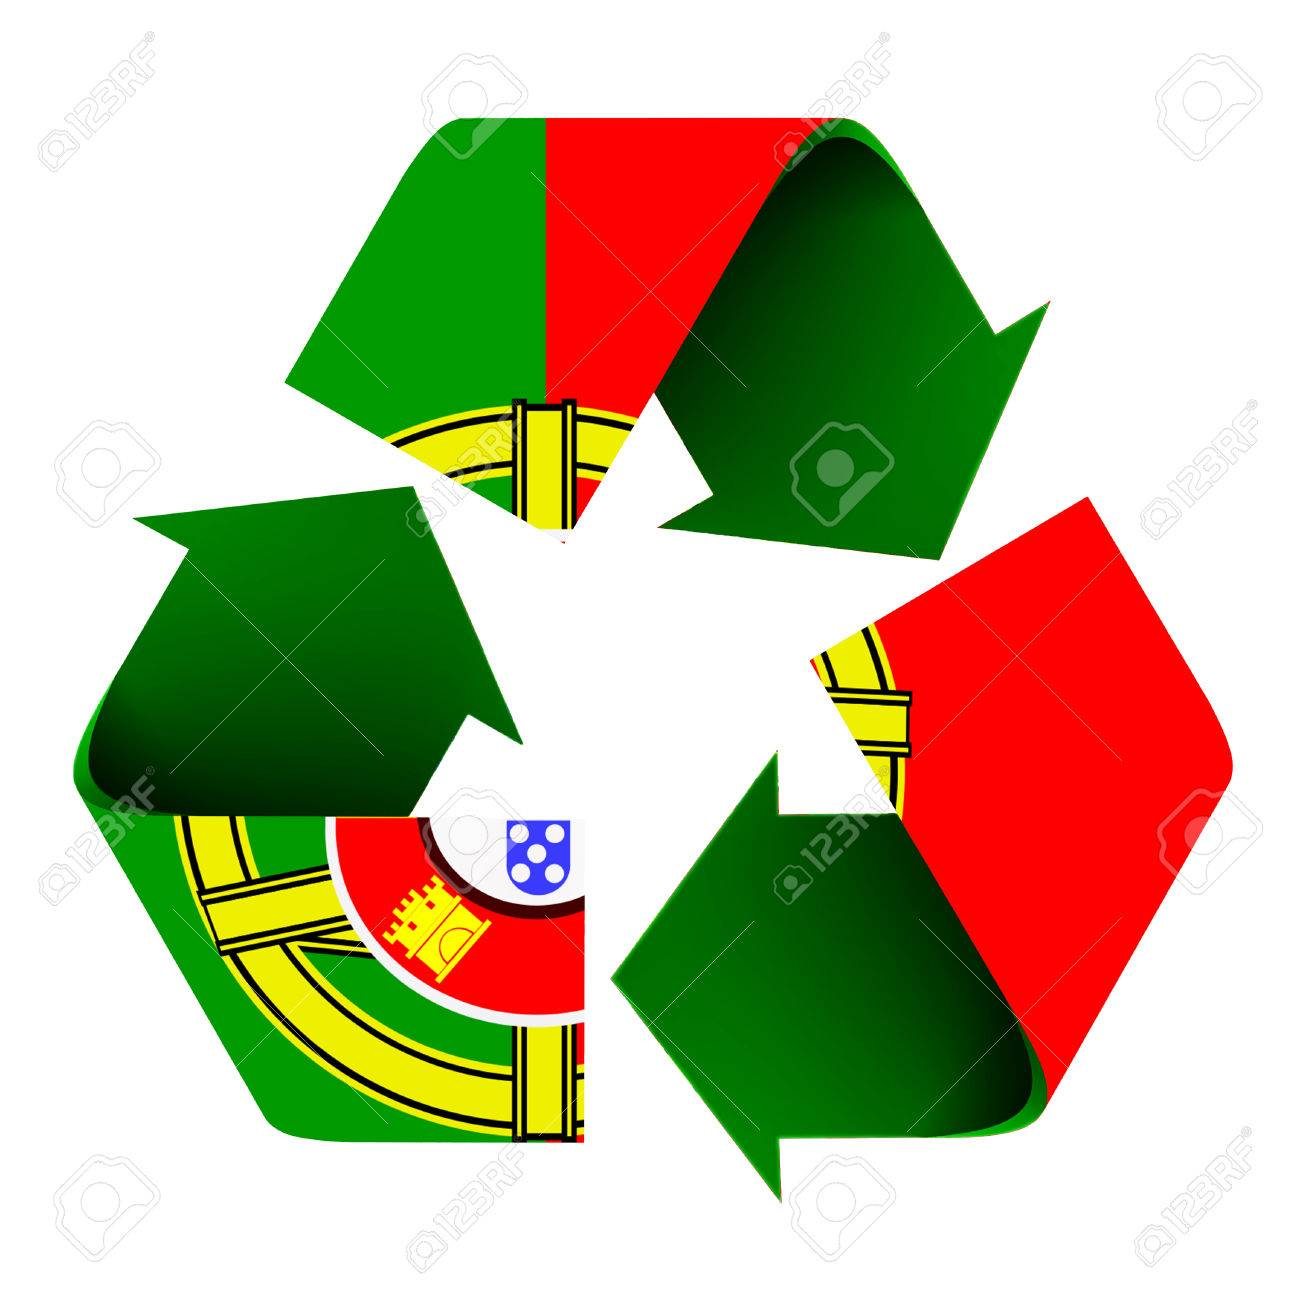 Flag of portugal superimposed on a recycle symbol isolated on flag of portugal superimposed on a recycle symbol isolated on a white background stock biocorpaavc Gallery